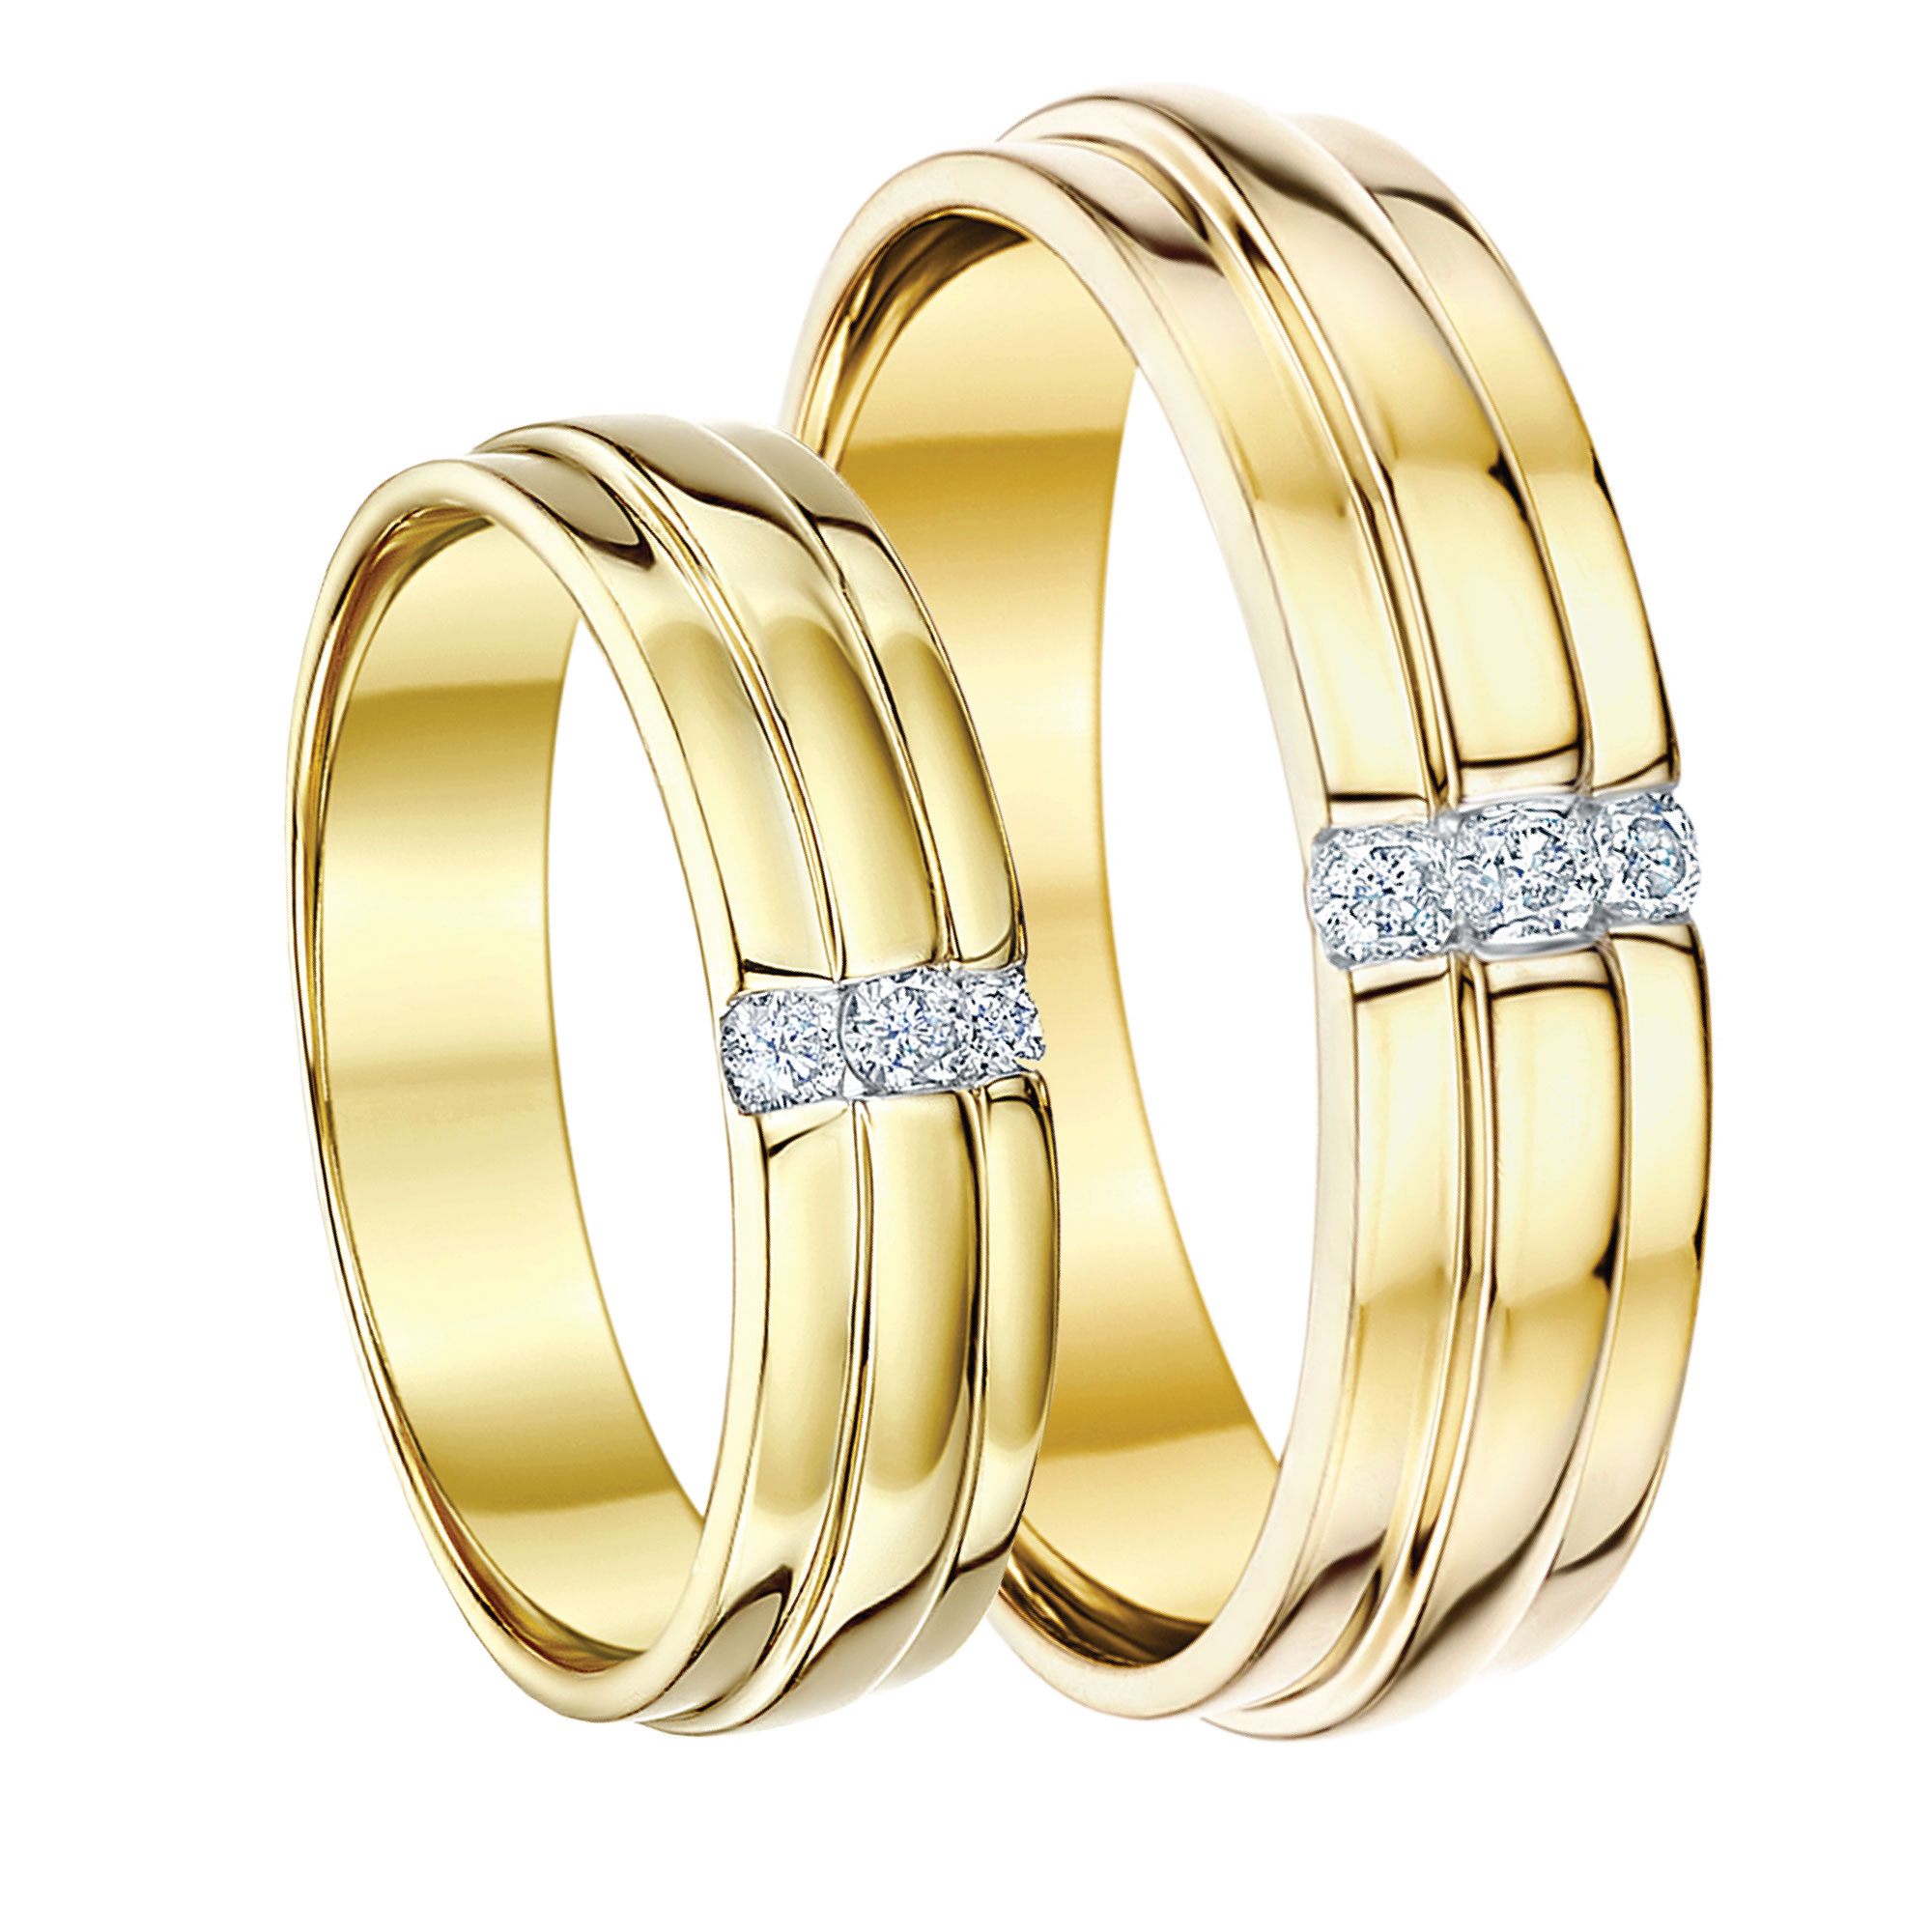 groom for bride elegant ring sets of rings gold her wedding